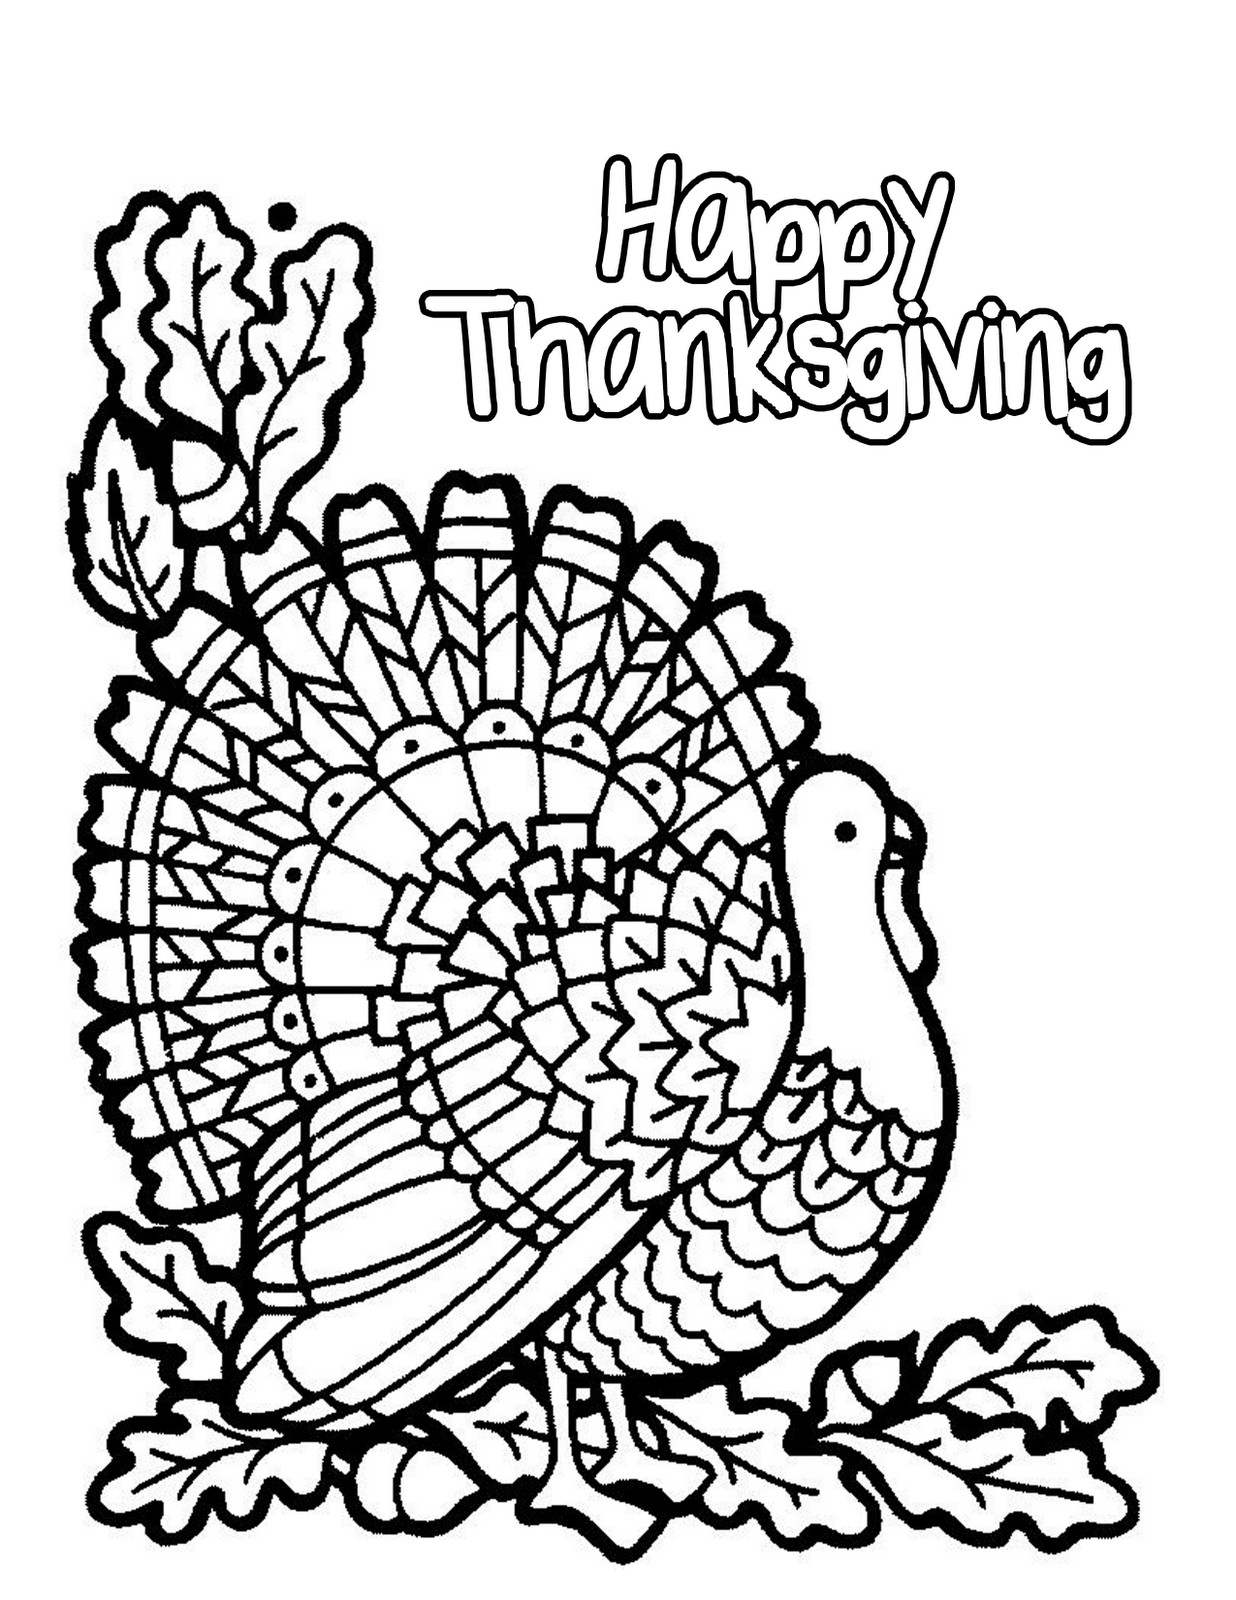 1236x1600 Absolutely Smart Thanksgiving Coloring Pages For Adults Happy